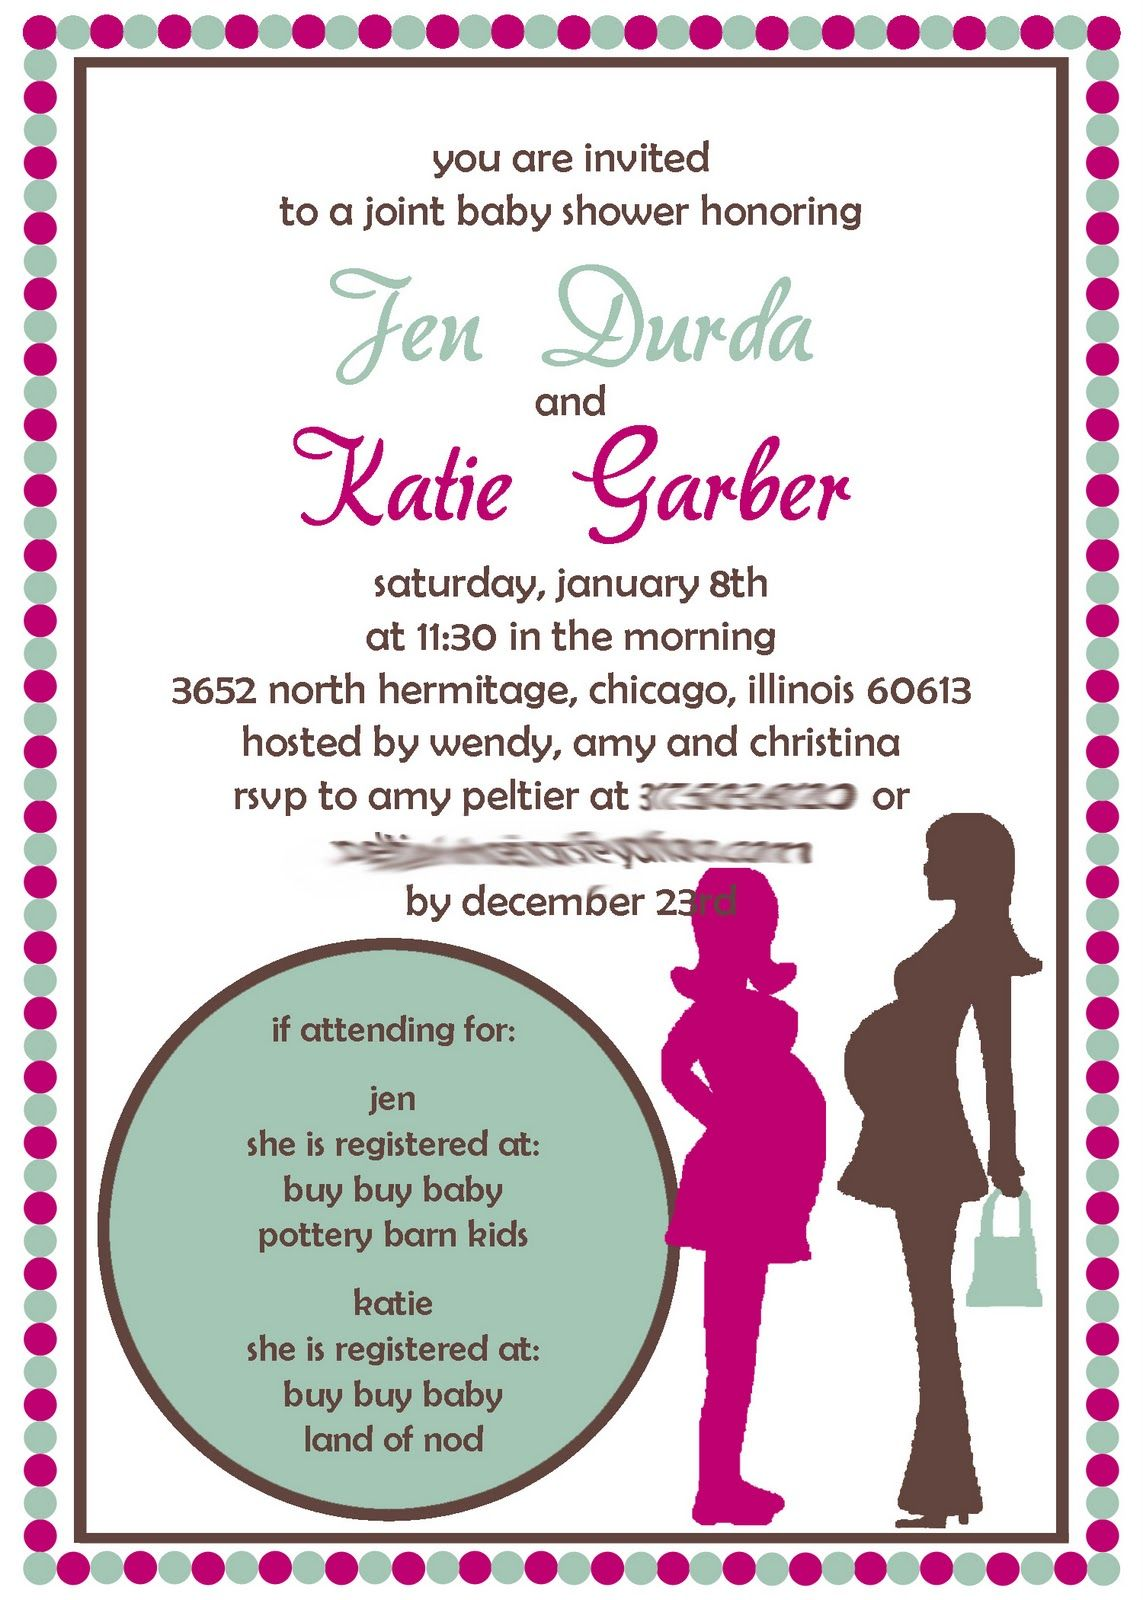 Pin by shannon stockton on kelly and brandi baby shower pinterest pin by shannon stockton on kelly and brandi baby shower pinterest joint baby showers shower invitations and babies stopboris Gallery